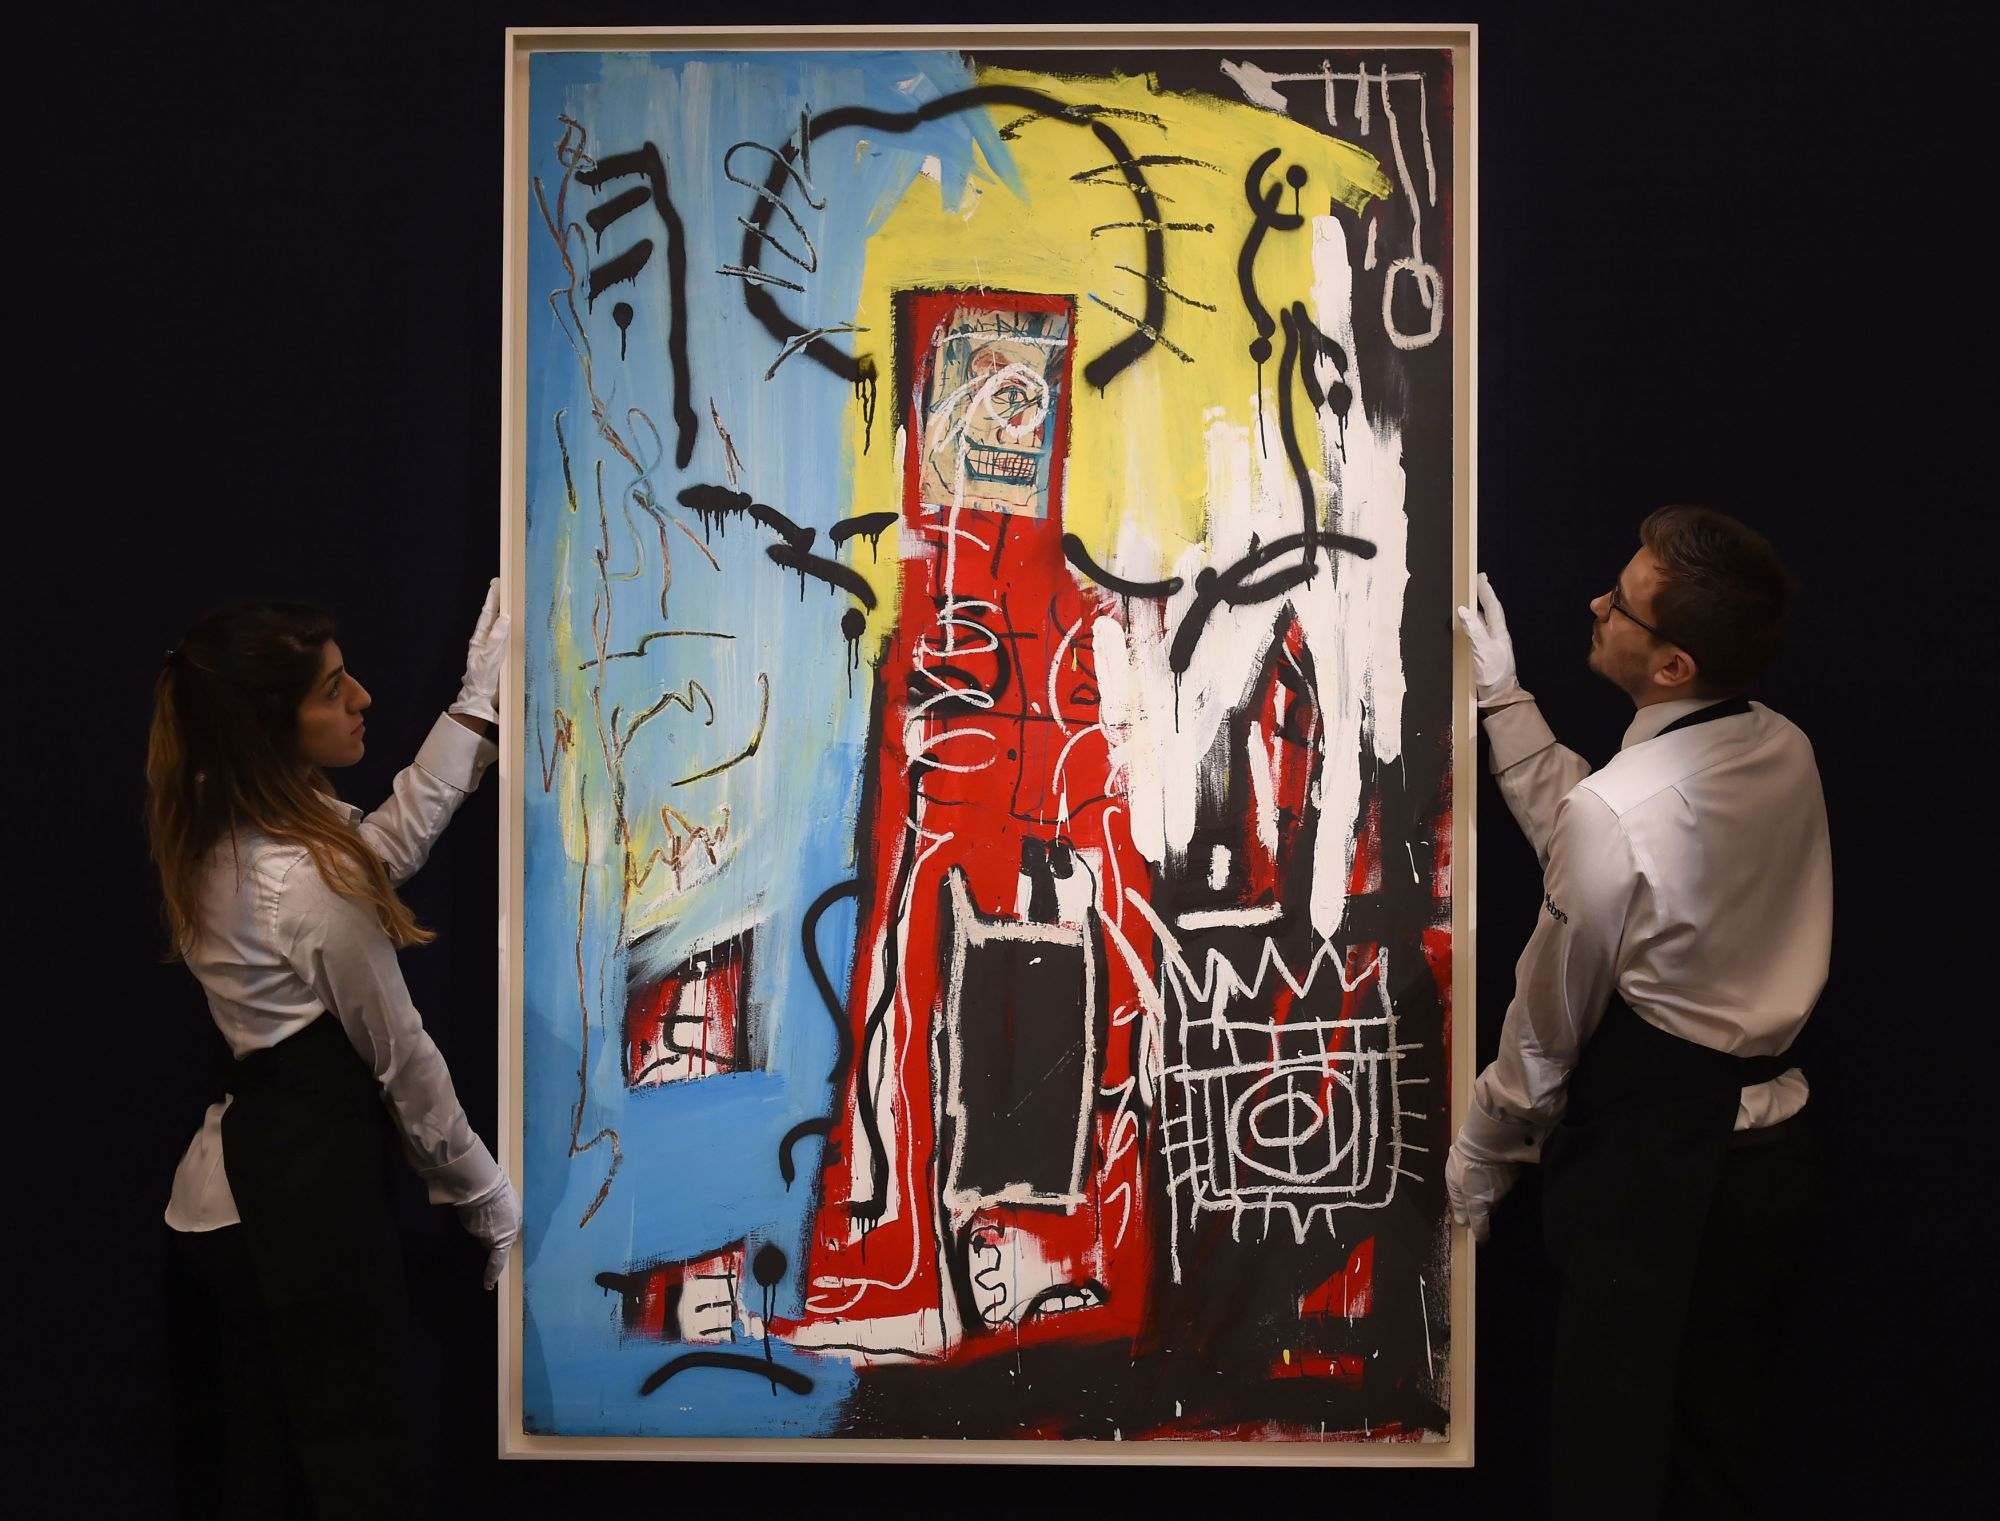 Sotheby's employees adjust Untitled (One Eyed Man or Xerox Face) painted in 1982 by Jean-Michel Basquiat which is estimated to fetch £14,000,000 - 18,000,000 at auction as part of their forthcoming sales of impressionist, modern, surrealist and contemporary art, together estimated to reach over £360 million. (Photo by Charlotte Ball/PA Images via Getty Images)